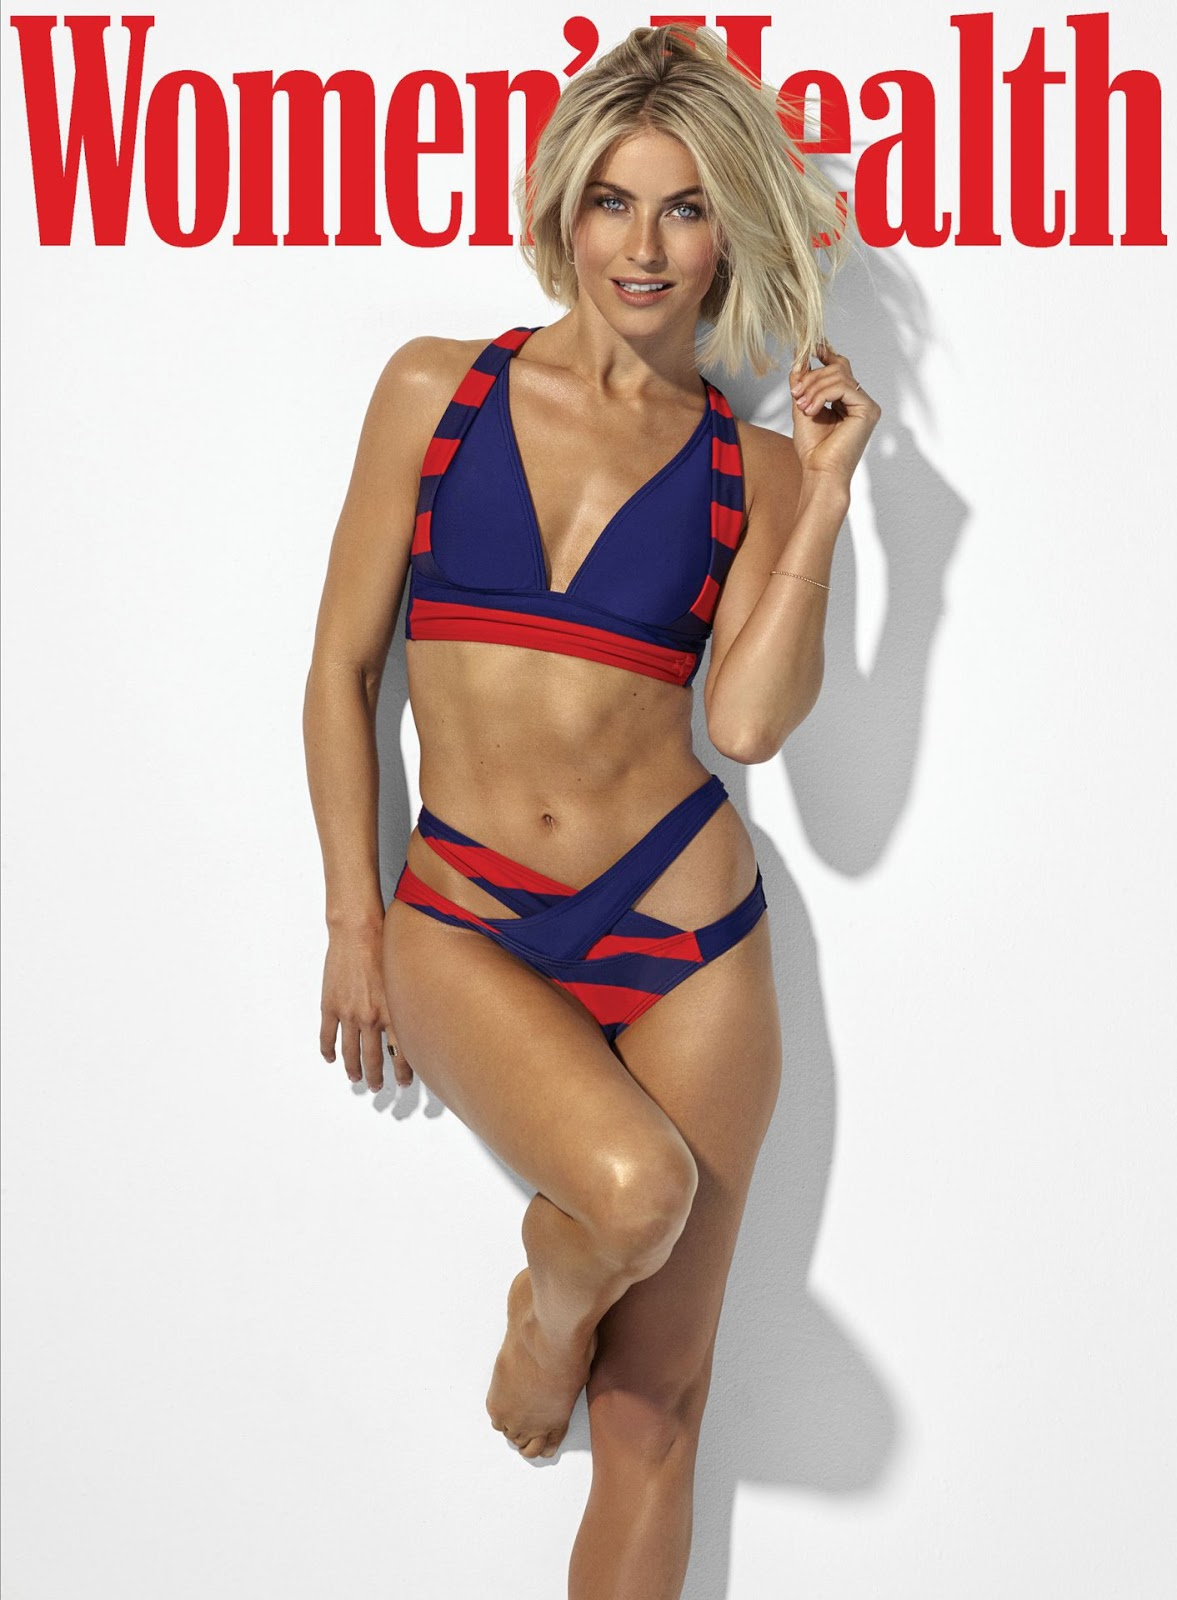 Julianne Hough on Women's Health September 2019 Cover